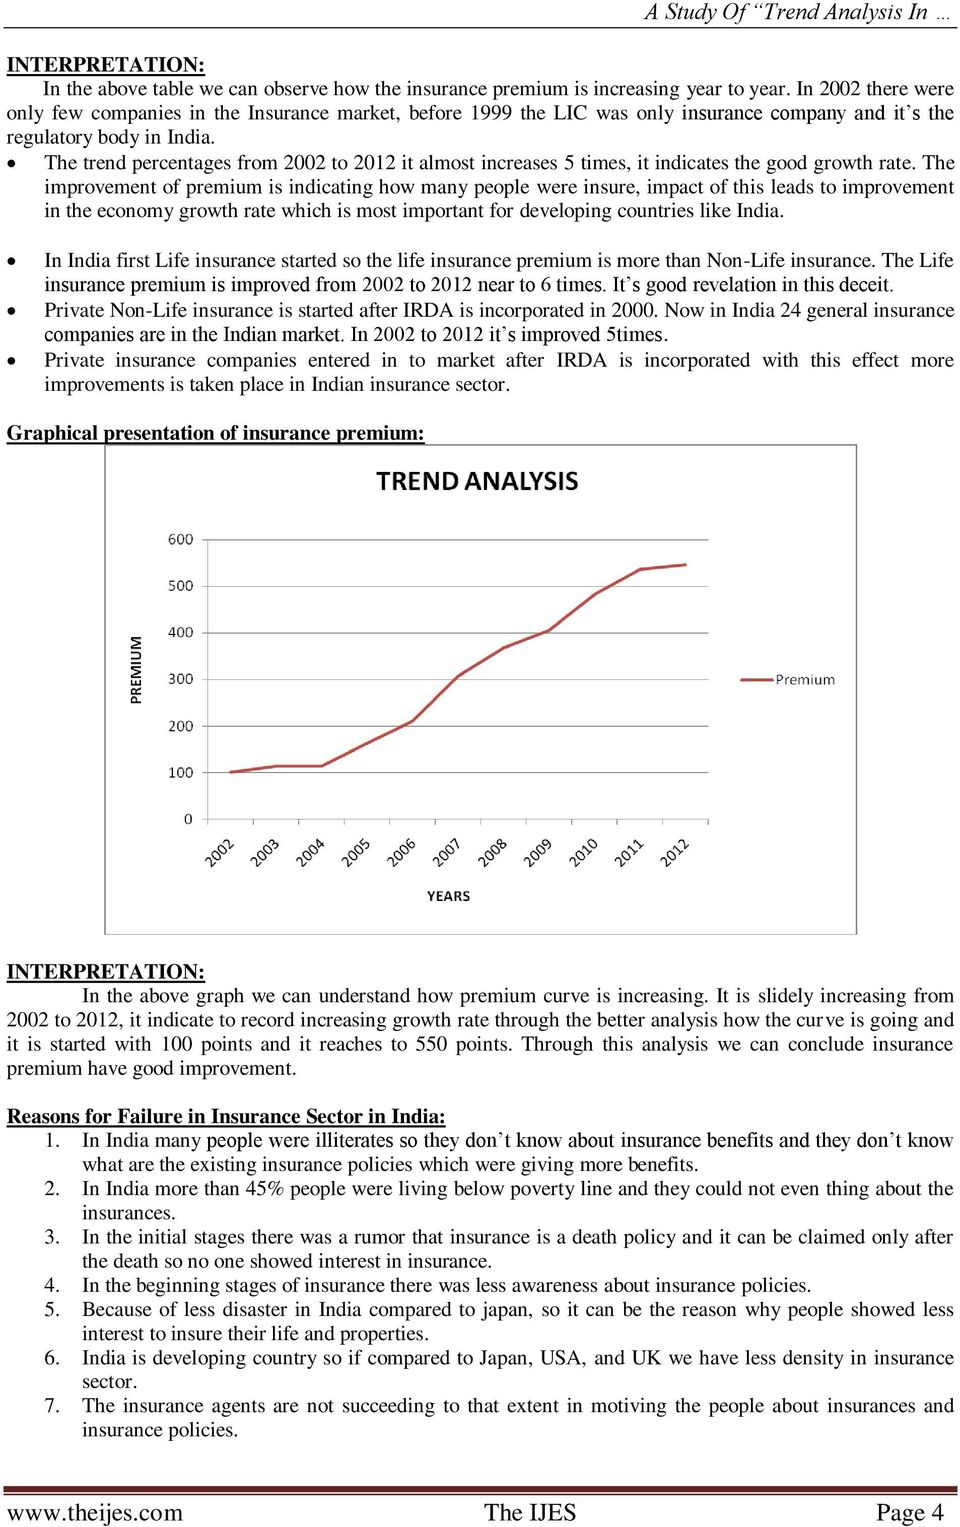 The trend percentages from 2002 to 2012 it almost increases 5 times, it indicates the good growth rate.